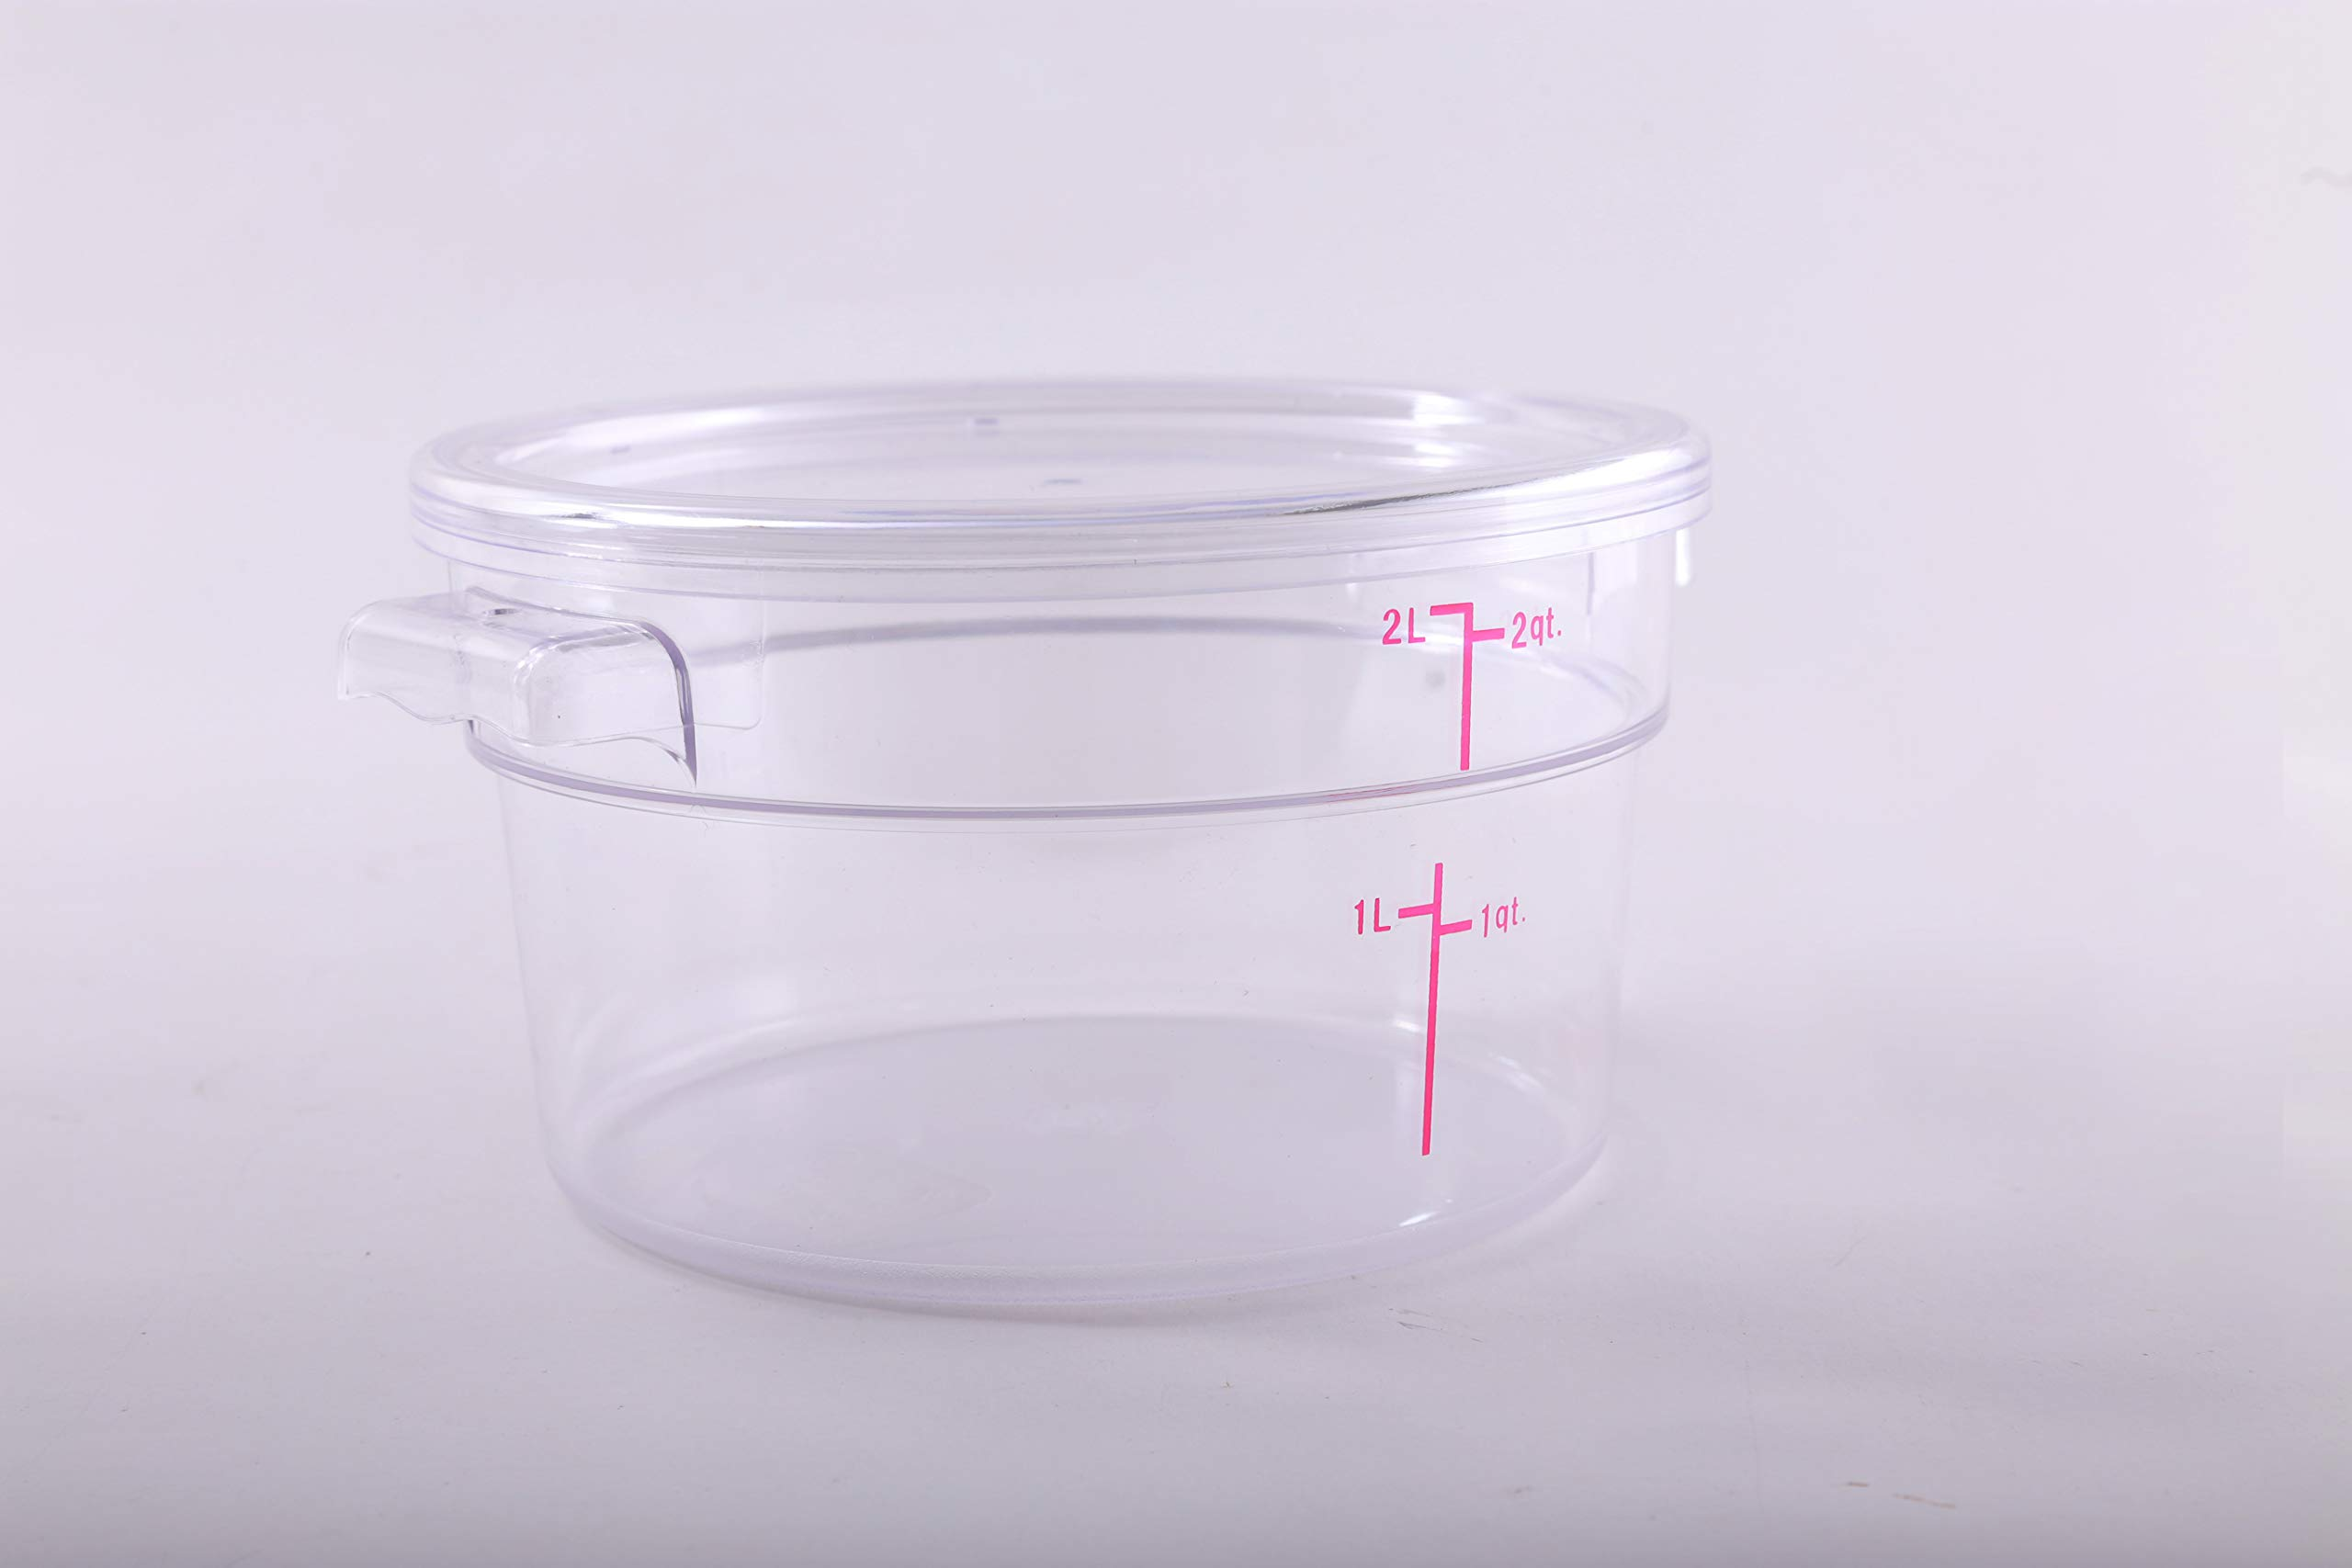 Hakka 2 Qt Commercial Grade Round Food Storage Containers with Lids,Polycarbonate,Clear - Case of 5 by HAKKA FOOD PROCESSING (Image #4)